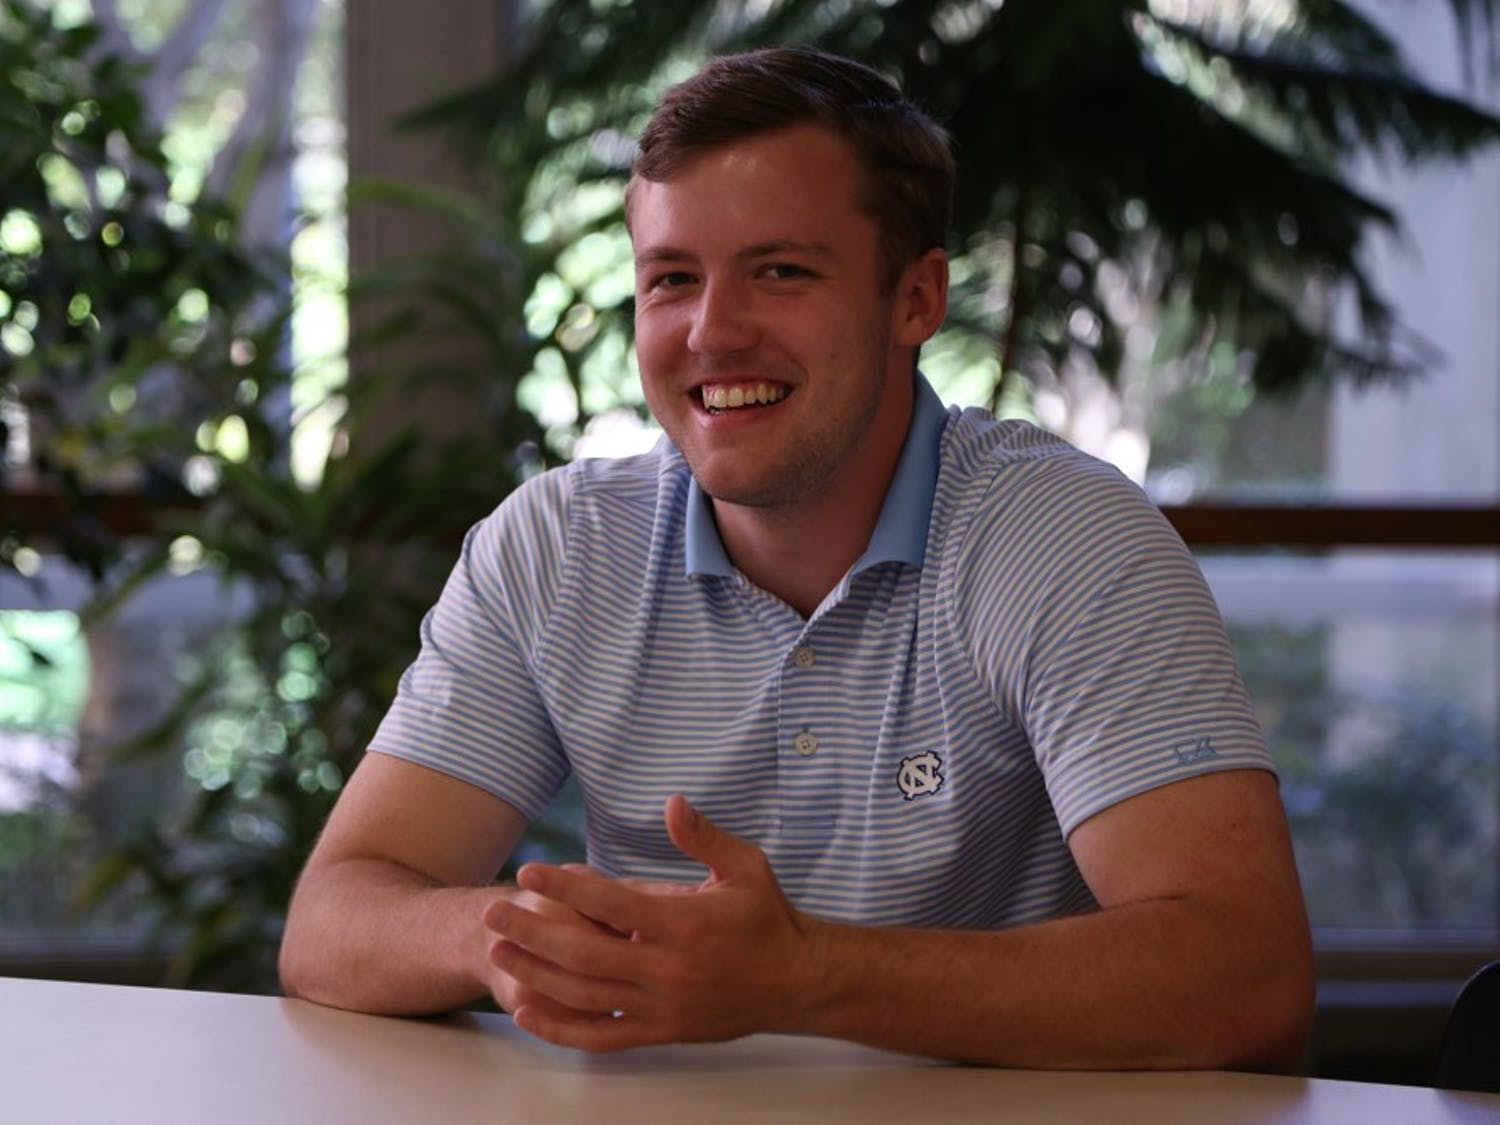 Global Soccer Society founder Hudson Owens (Senior) hopes that he can honor his father's legacy through his work.